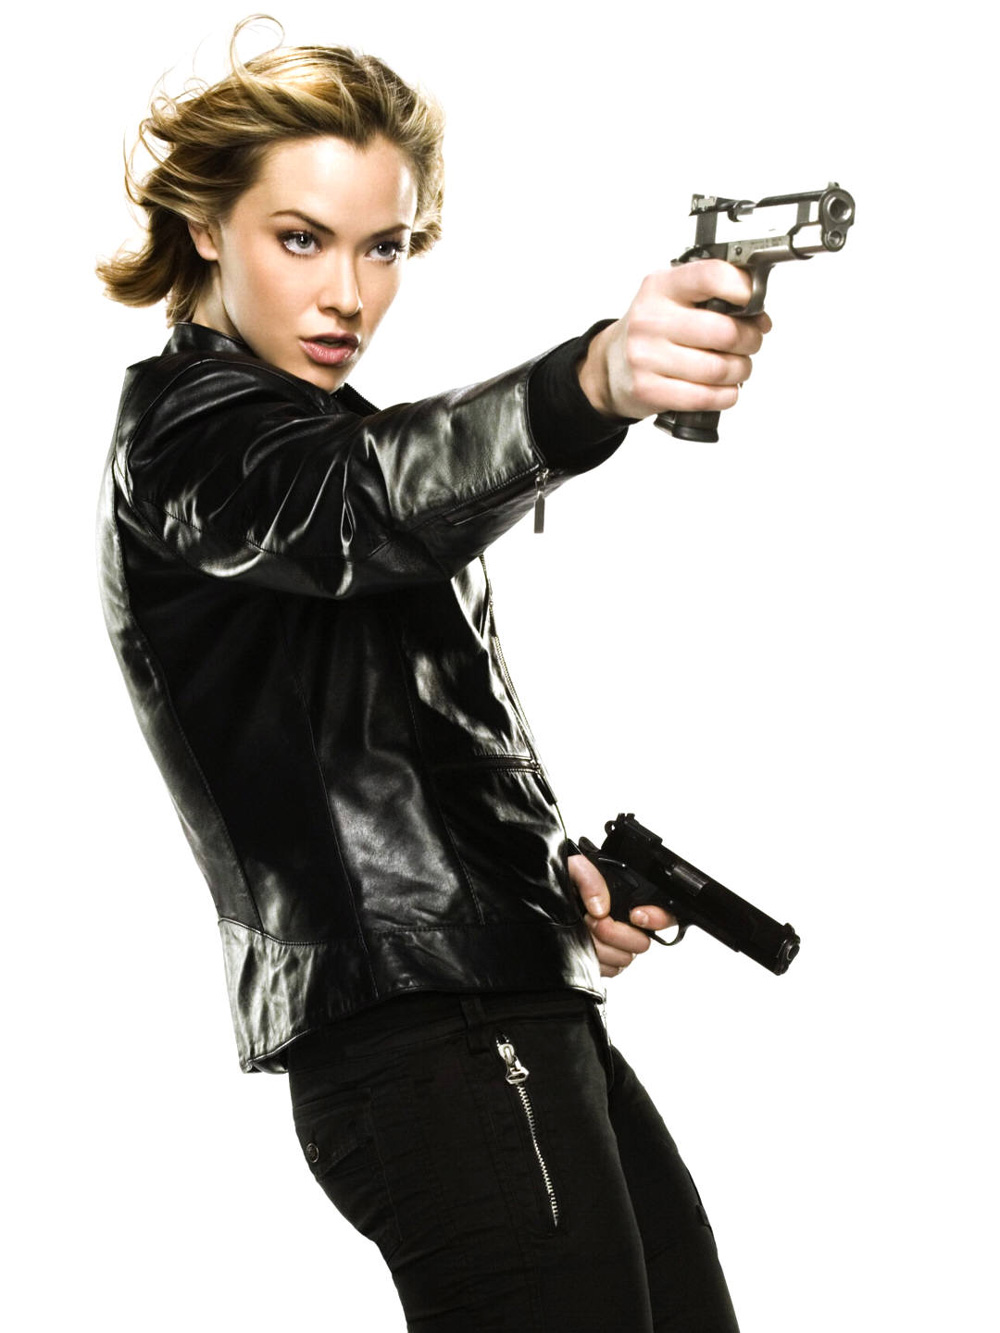 Painkiller jane picture 58